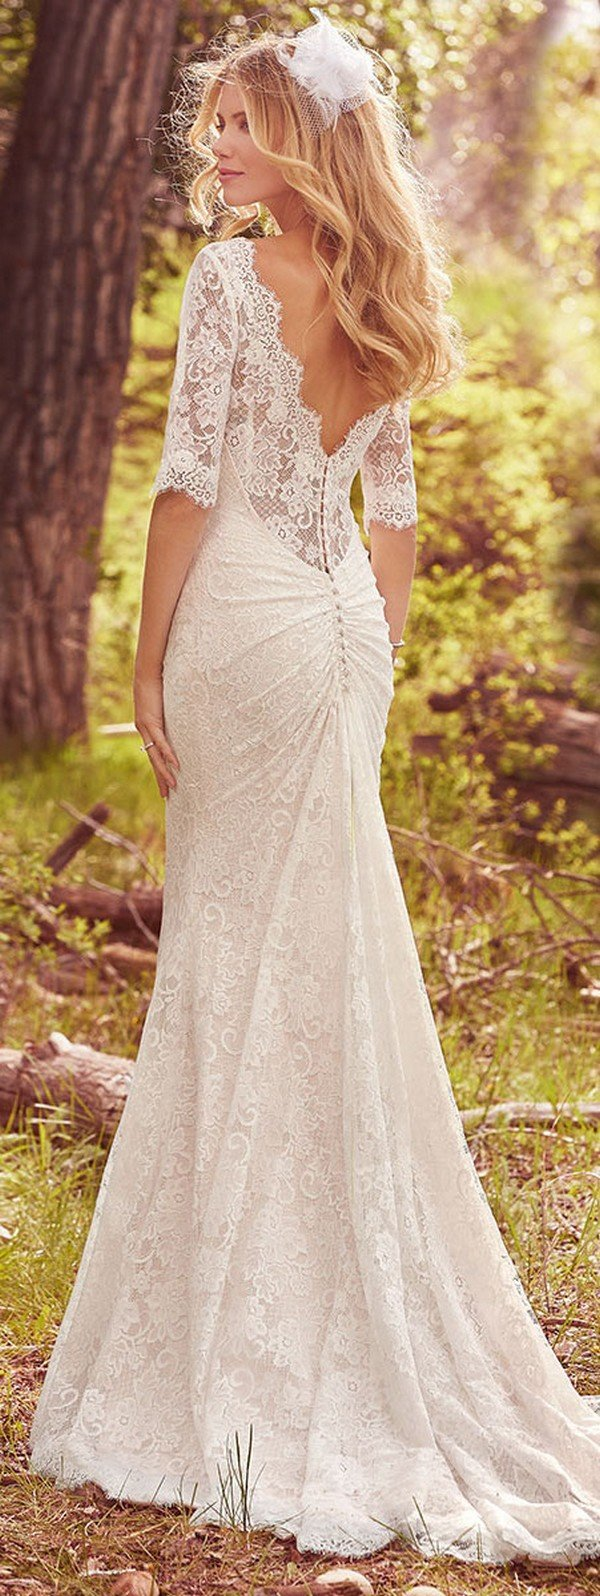 Trubridal Wedding Blog Vintage Wedding Dresses Archives - Vintage Wedding Dresses